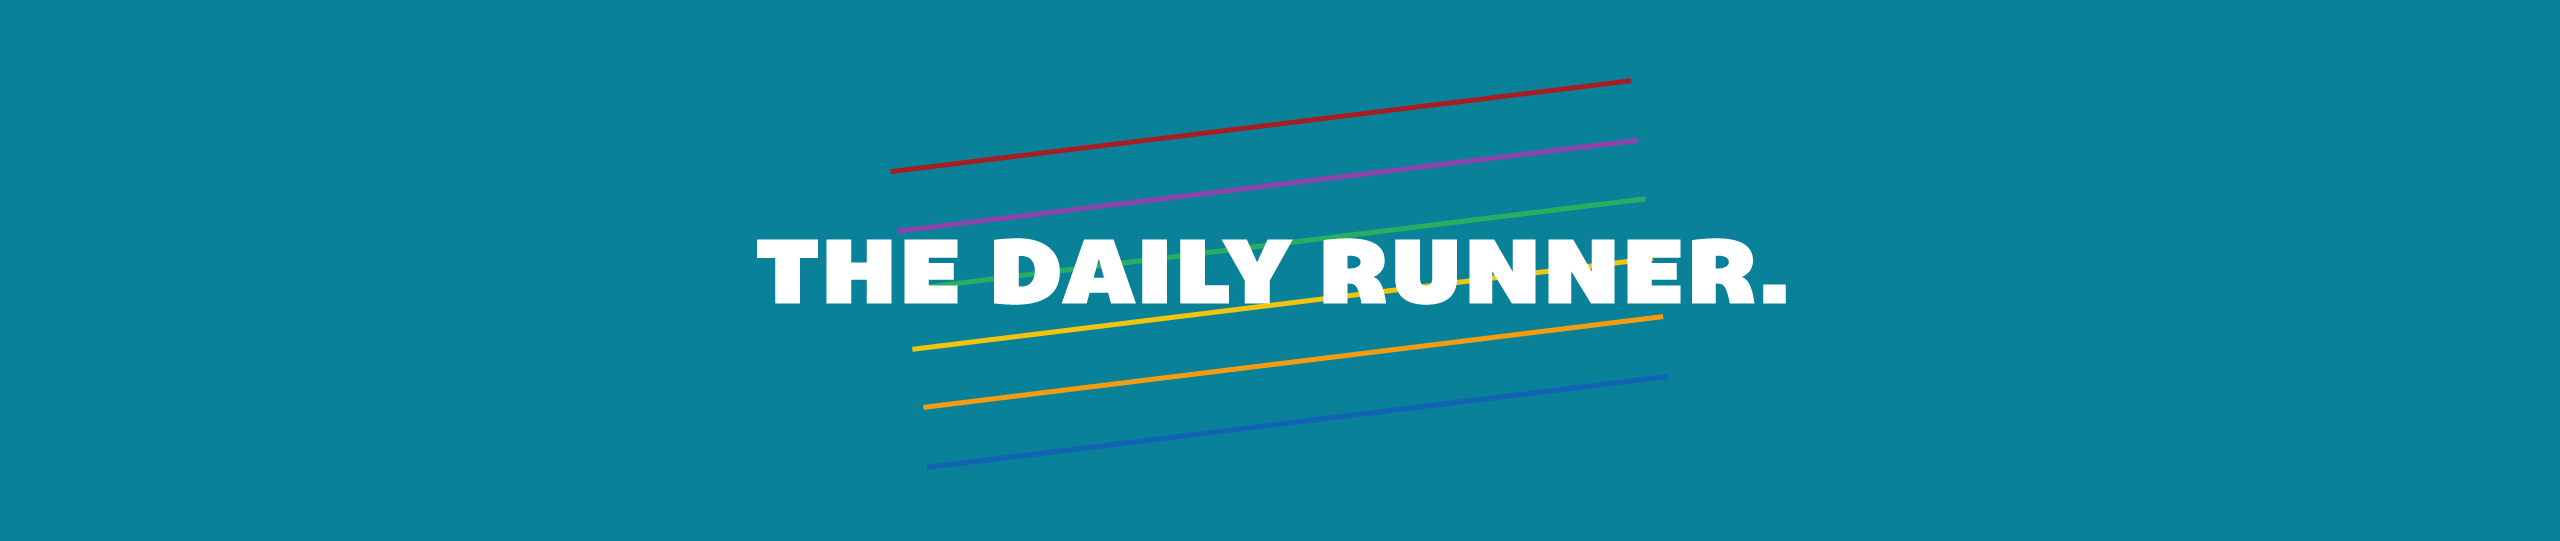 The Daily Runner